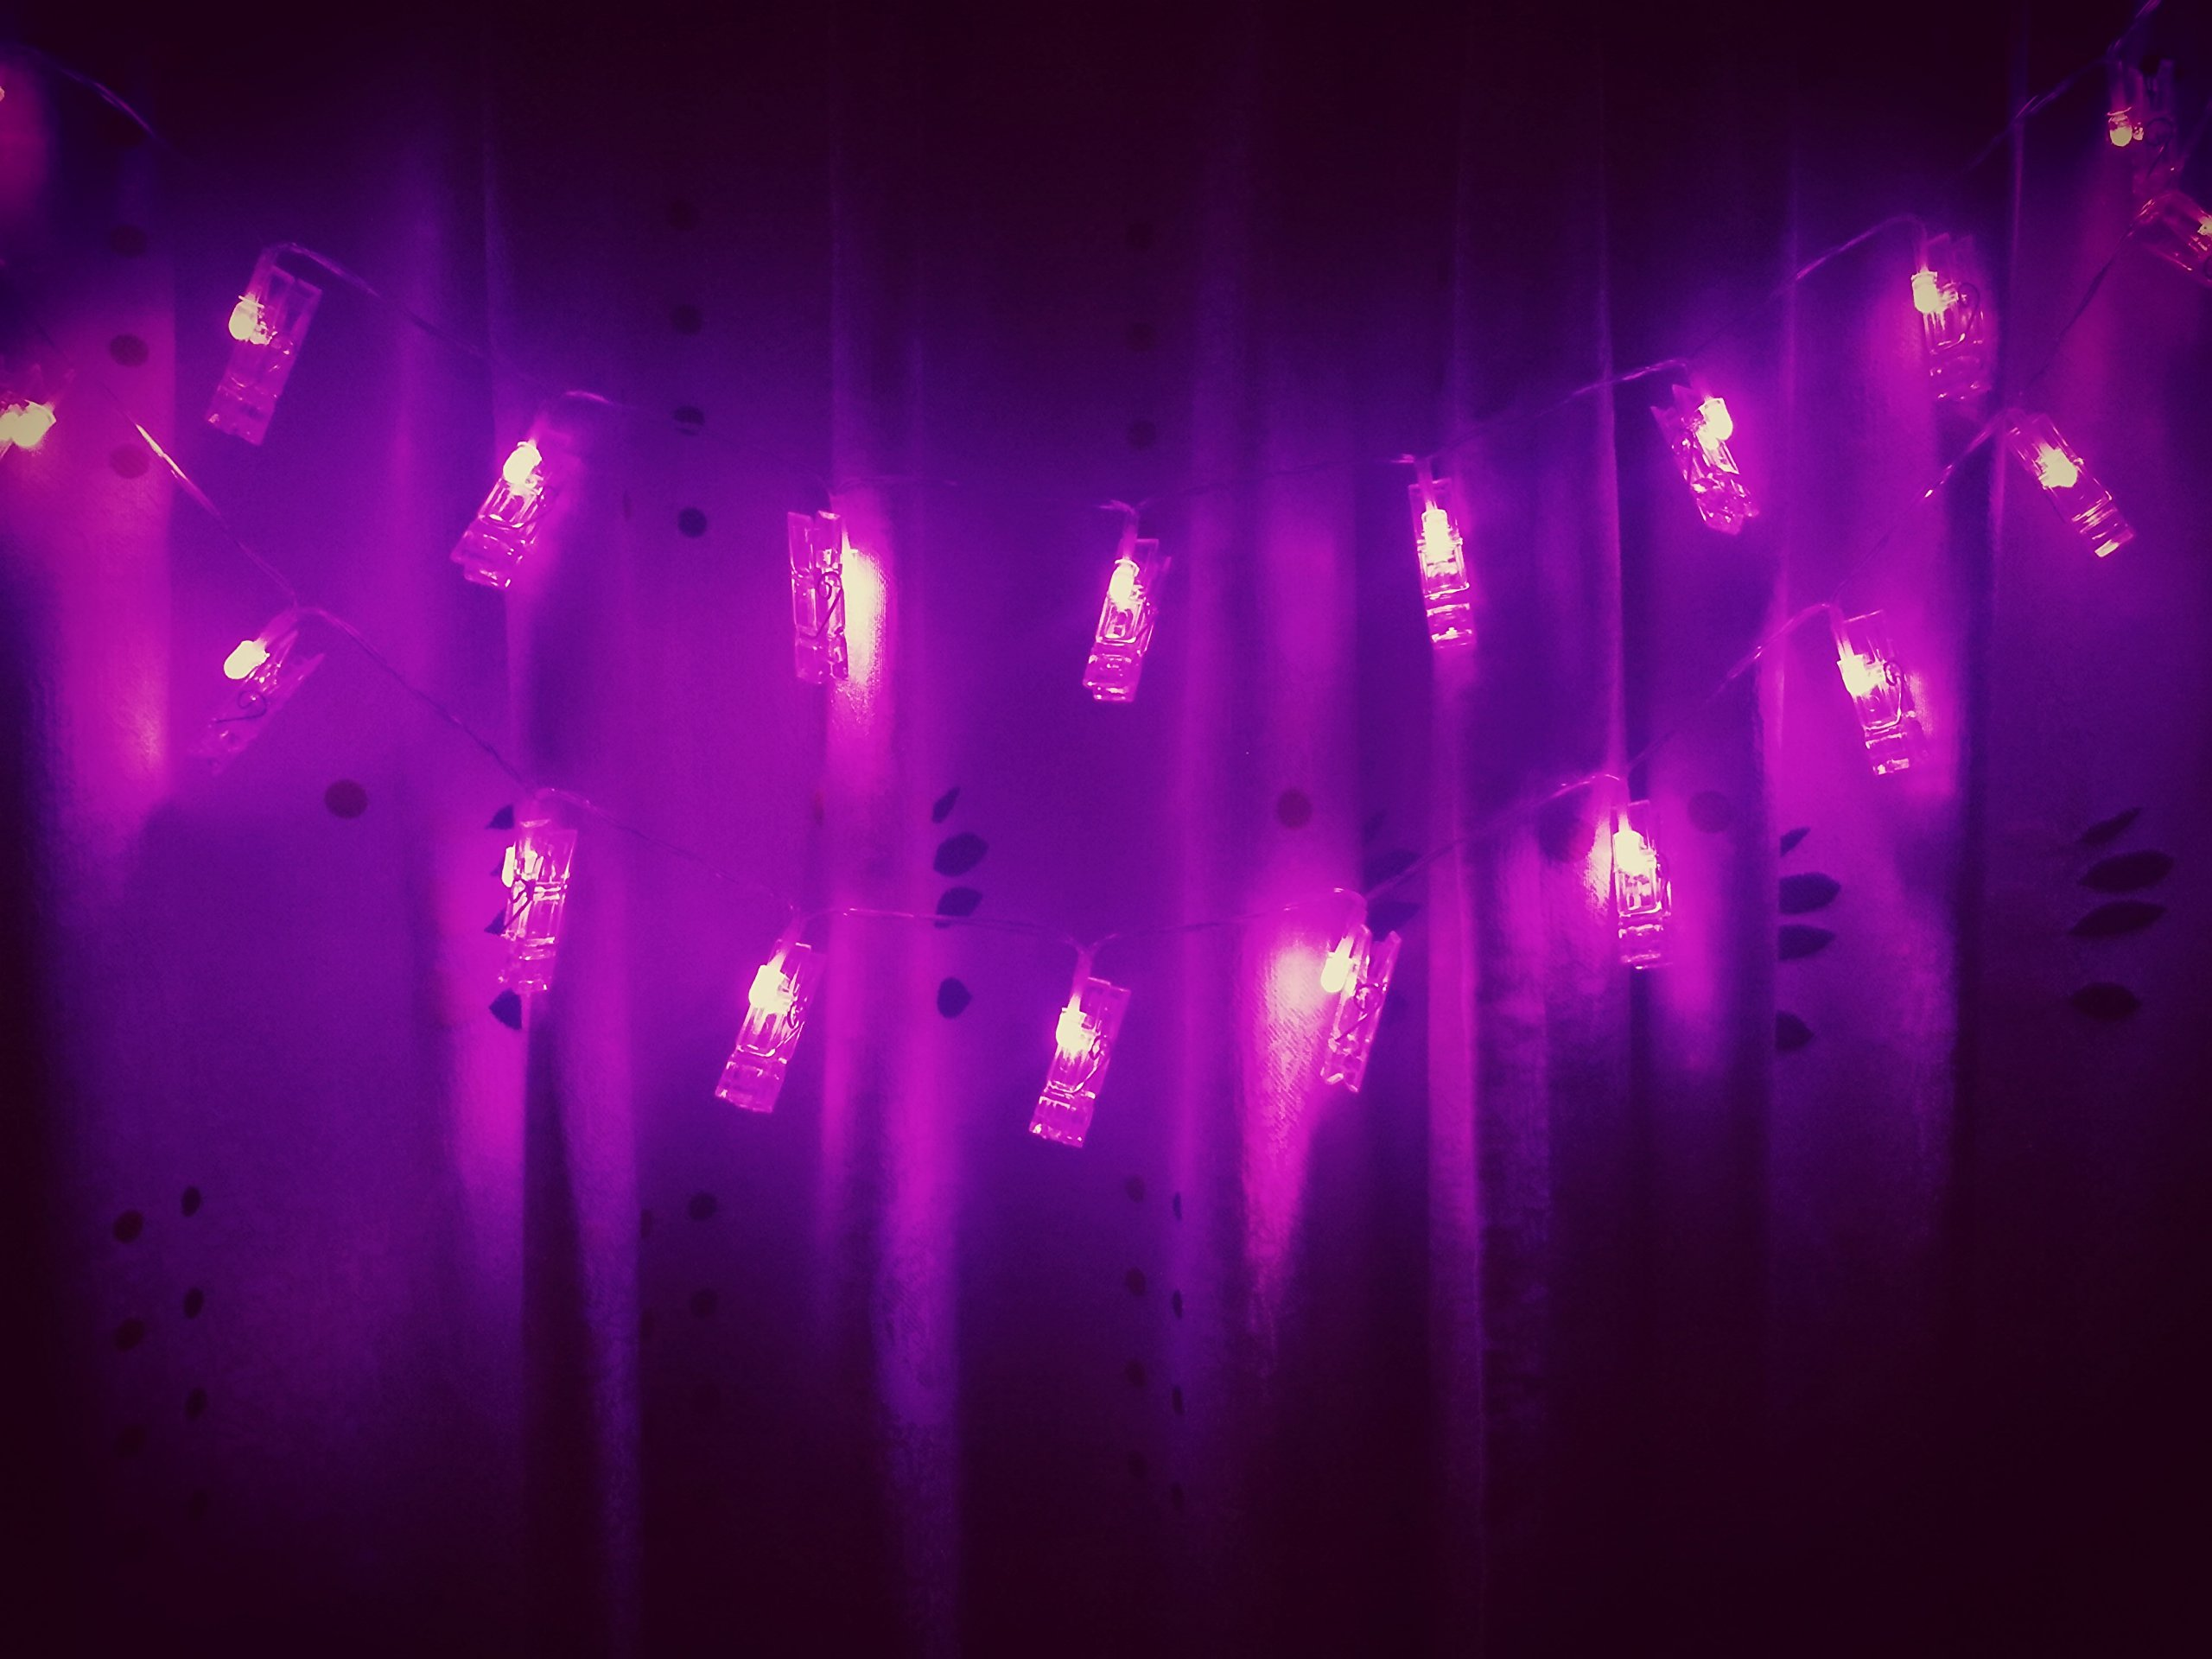 X-GIFT Photo Clips String Lights for Girls Living Room, Gift for College Dorm Room Decor, Wall Accessories, Led Bedroom Lights, Romantic Purple Lights, USB Powered, 30 LEDs